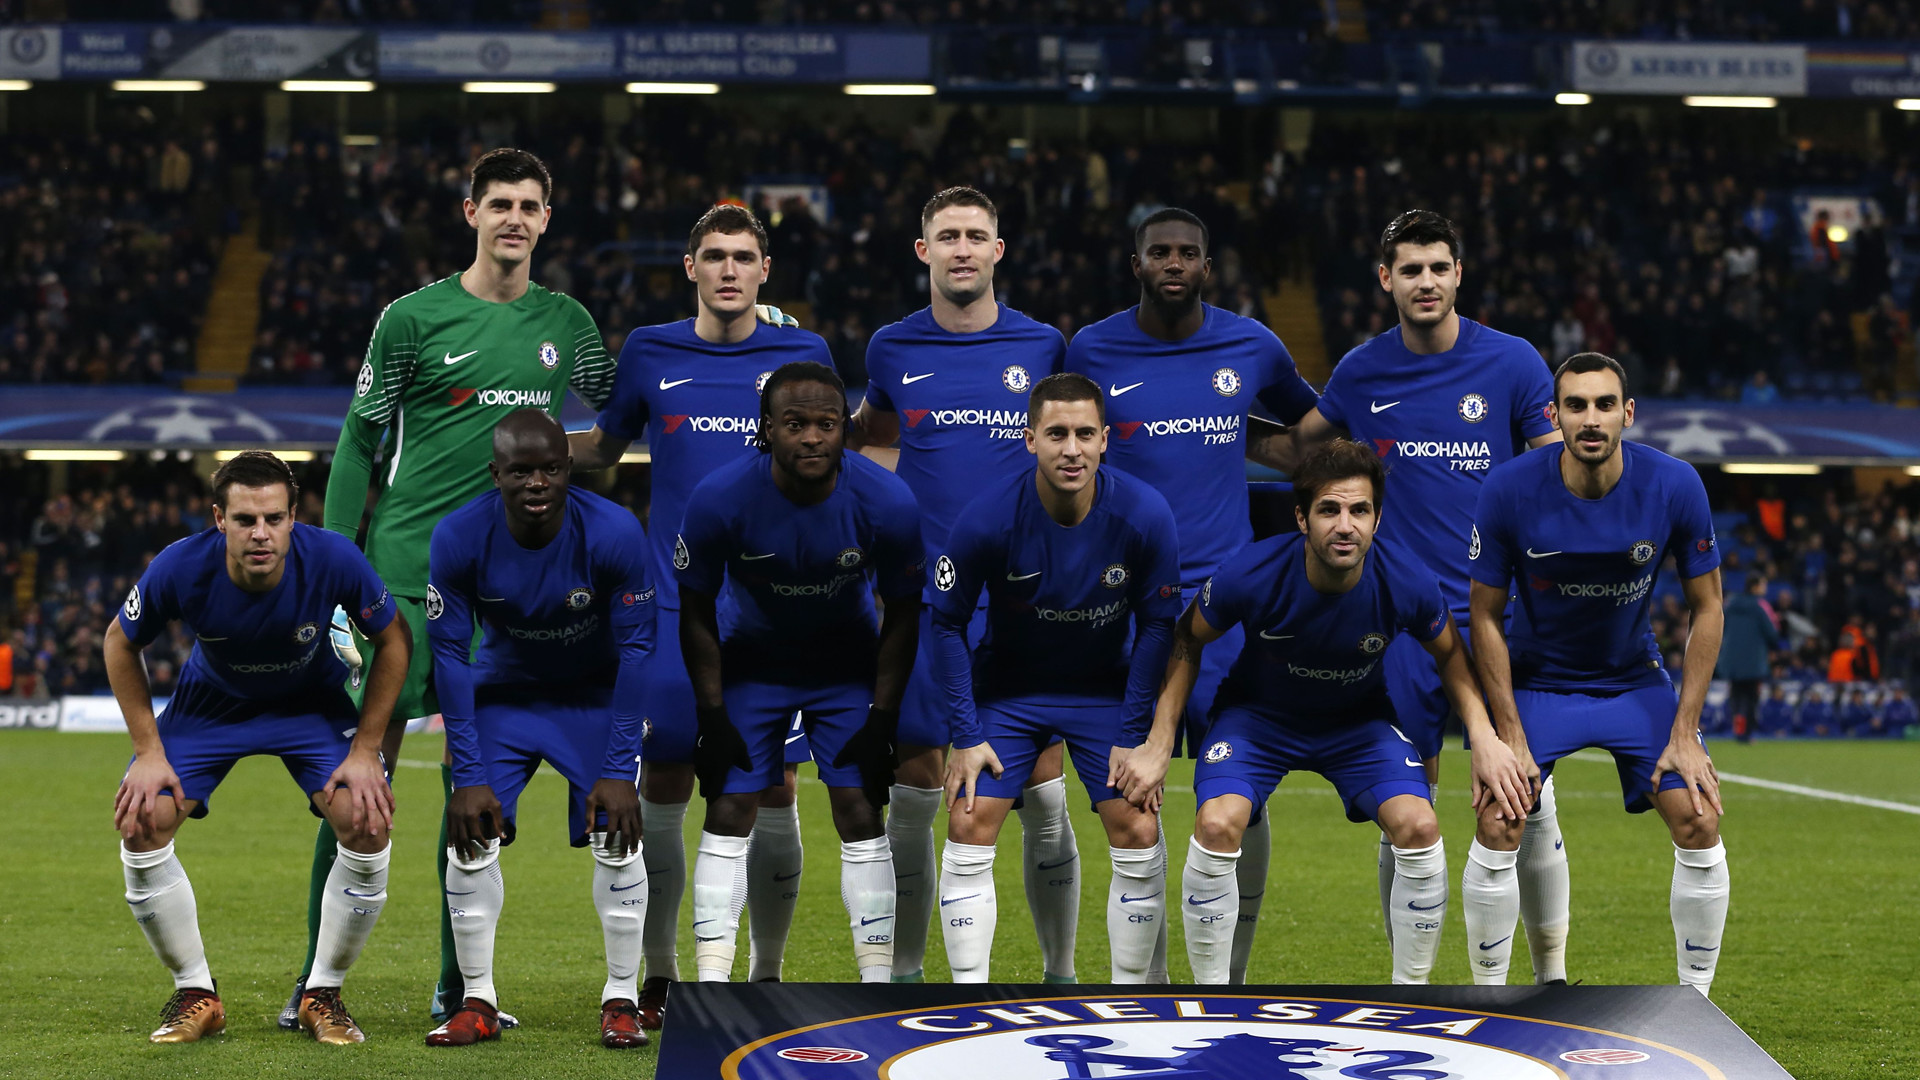 Chelsea squad 2018 wallpapers 62 background pictures - Chelsea wallpaper 2018 hd ...